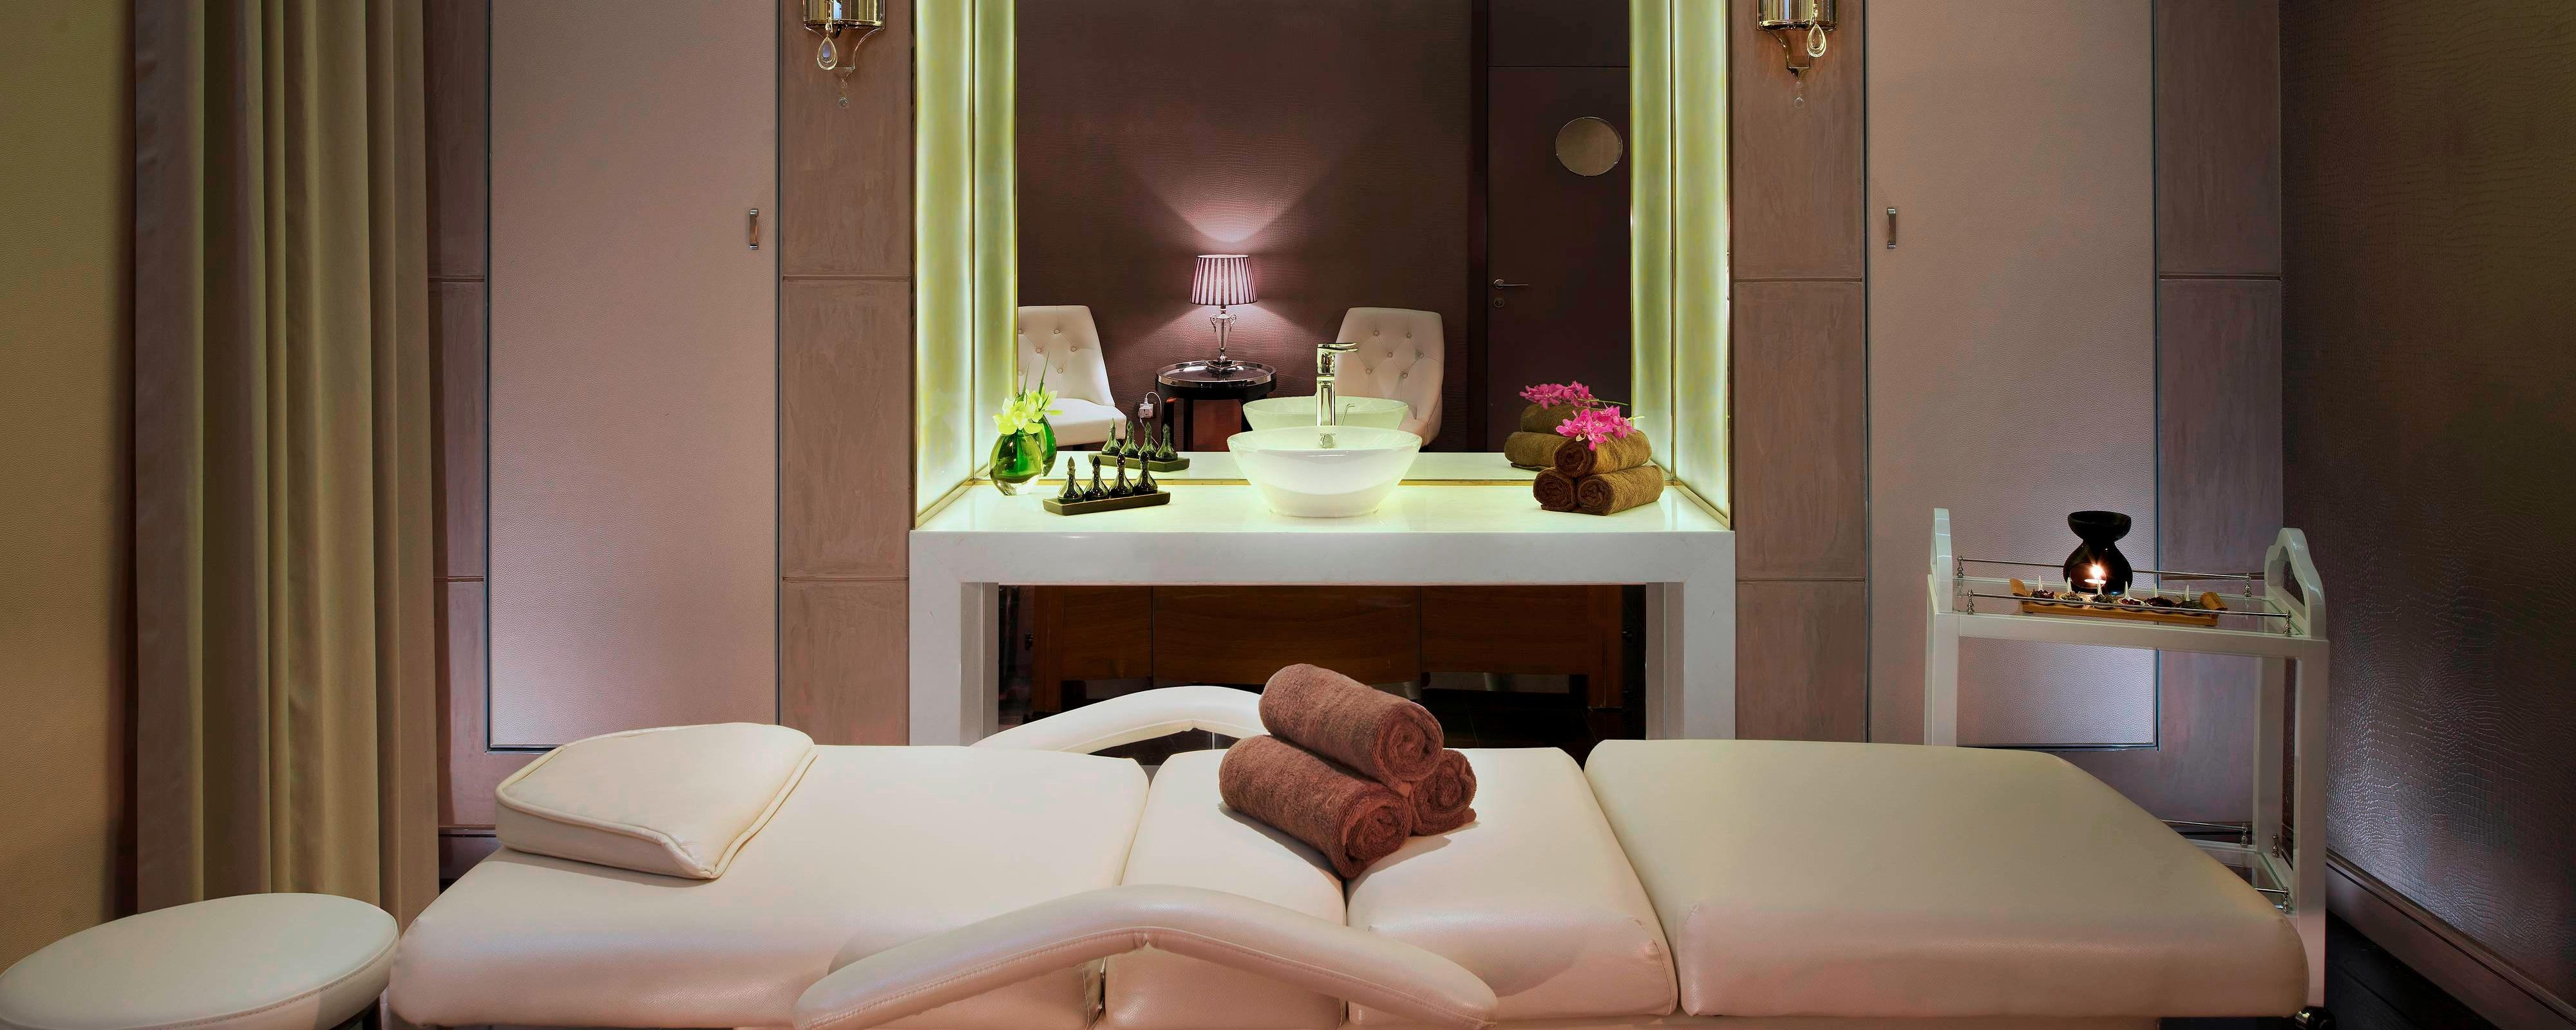 Iridium Spa Treatment Room